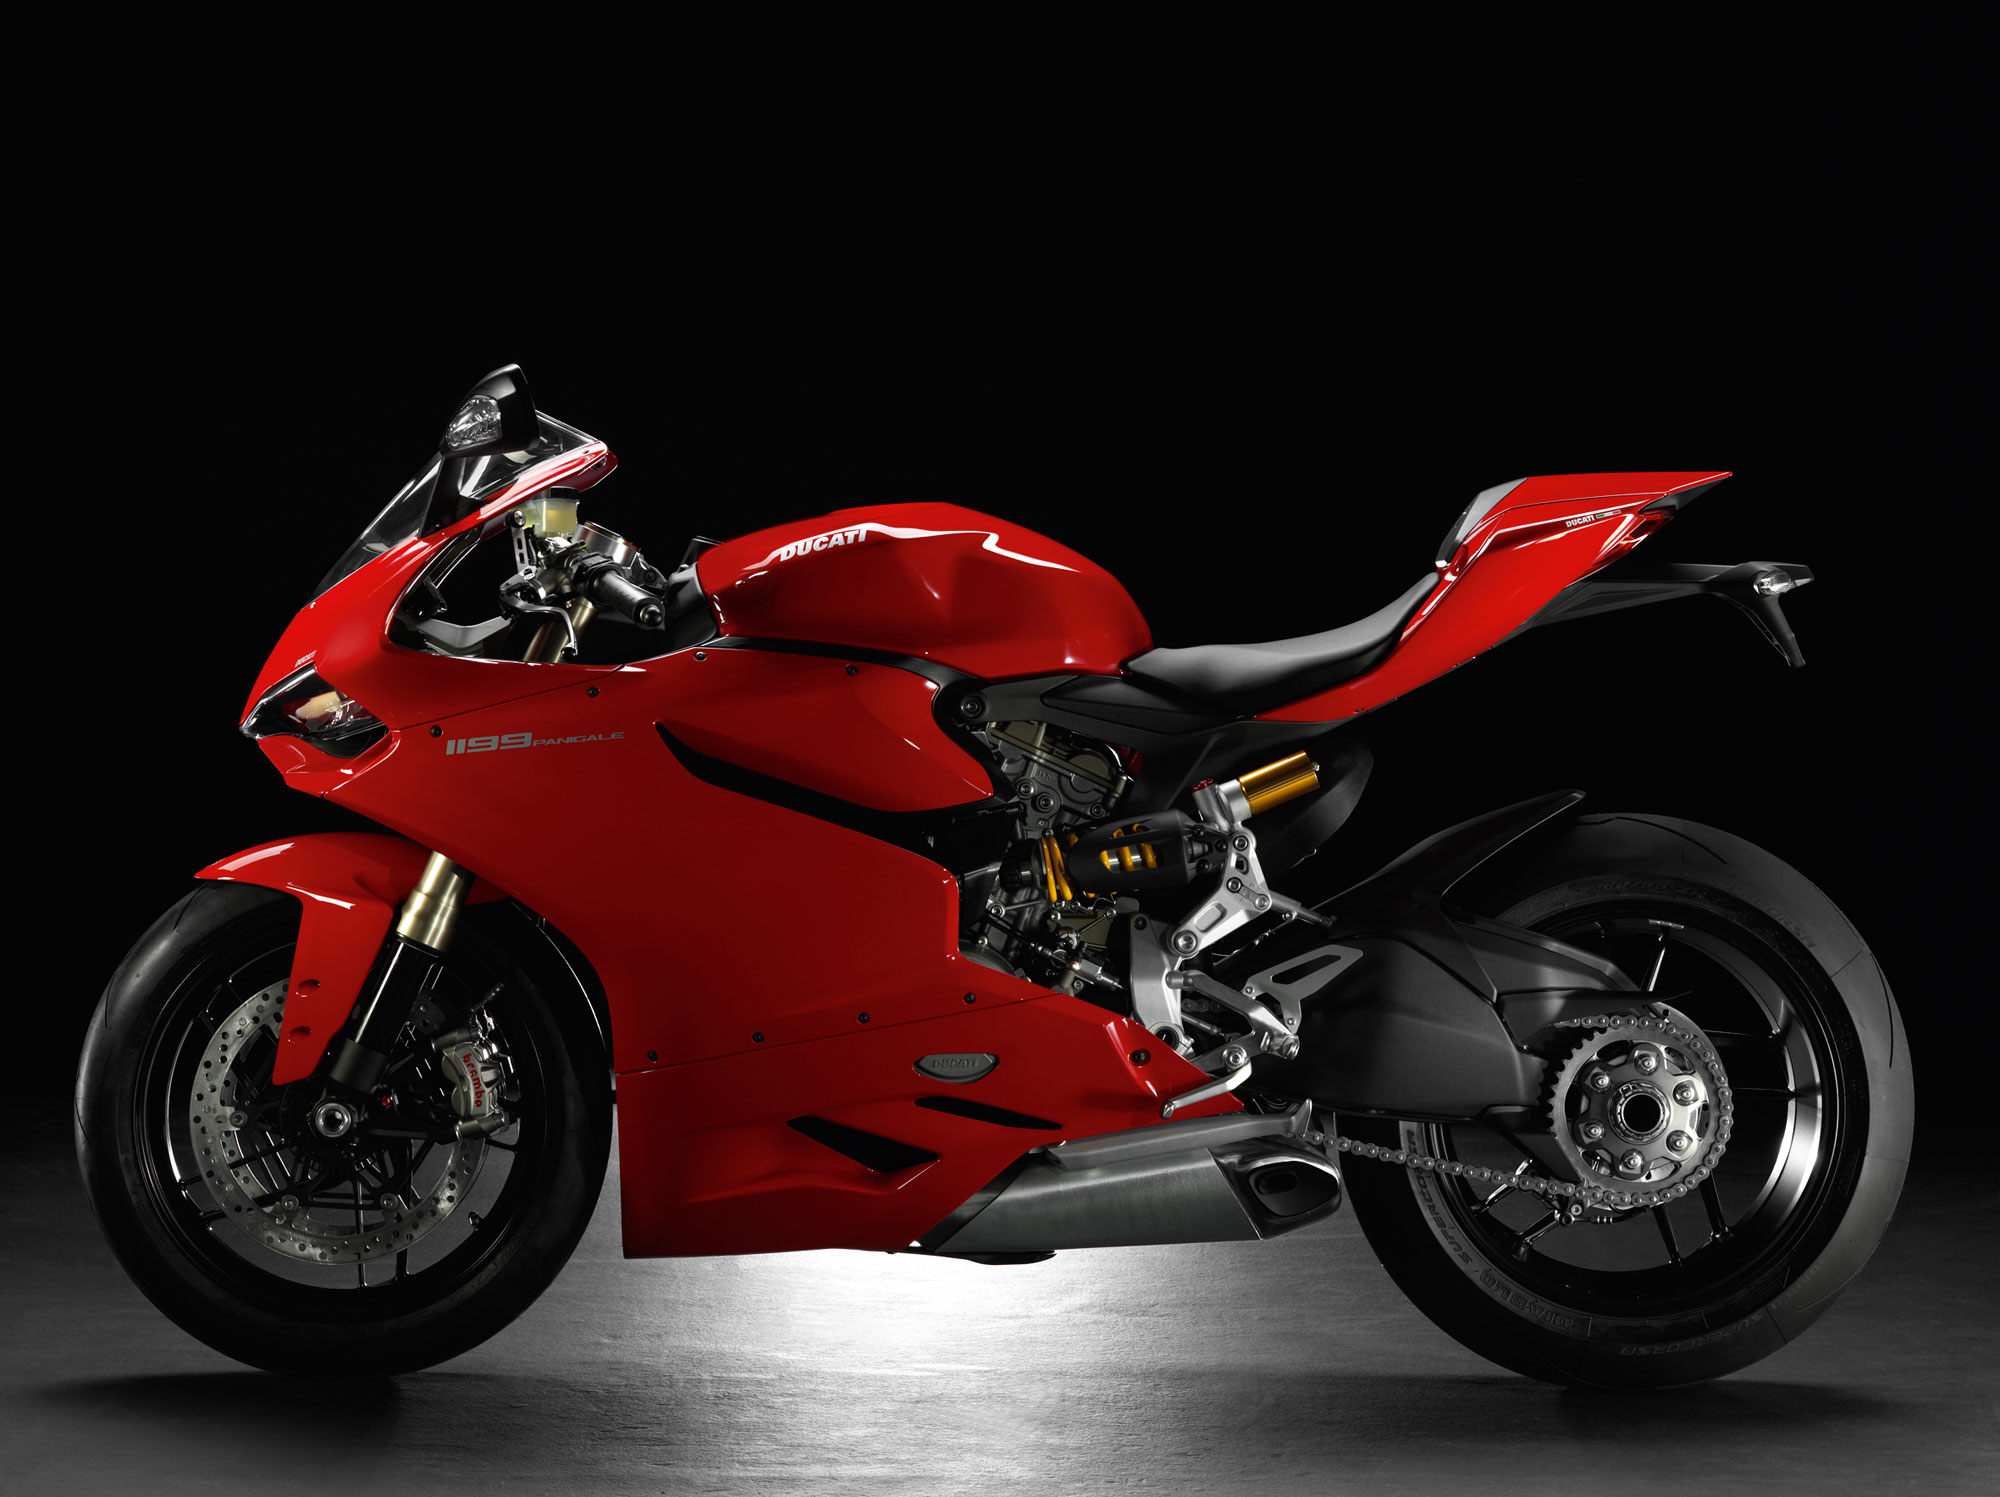 2013 Ducati Superbike 1199 Panigale Review